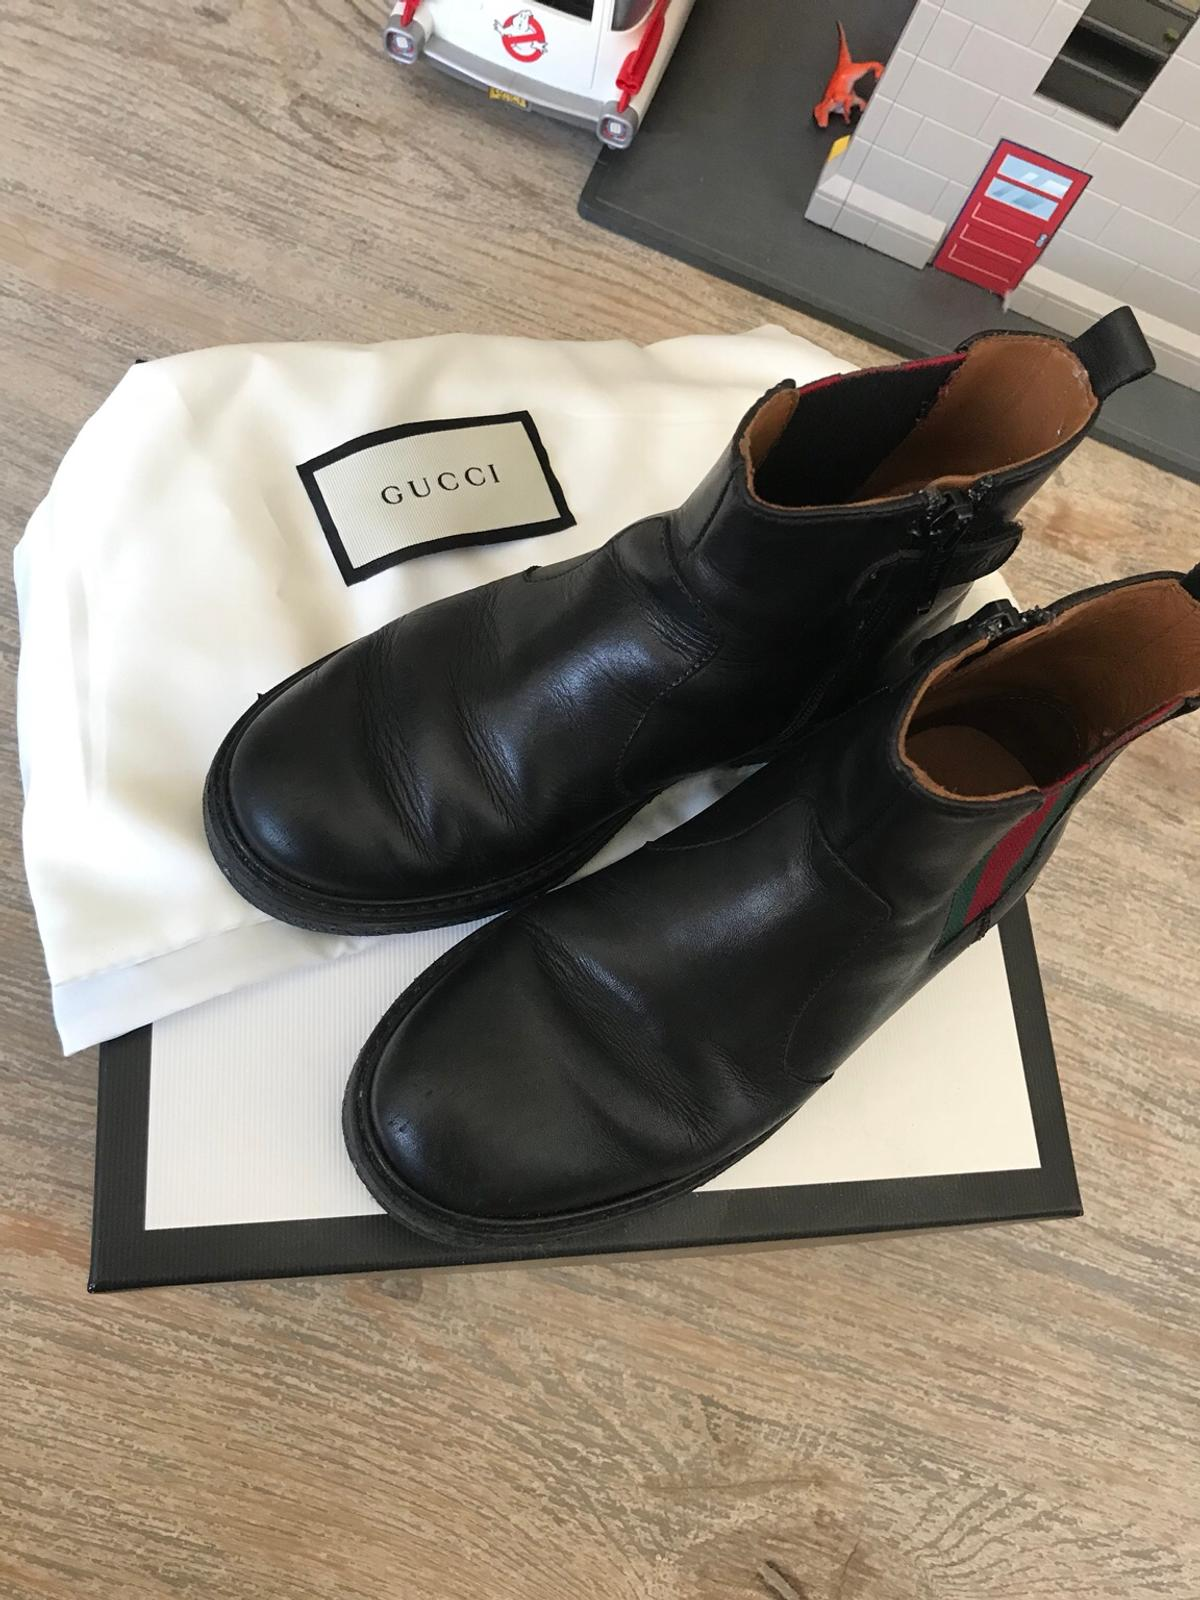 d0670bf714b Gucci boots for sale in SR5 Sunderland for £100.00 for sale - Shpock